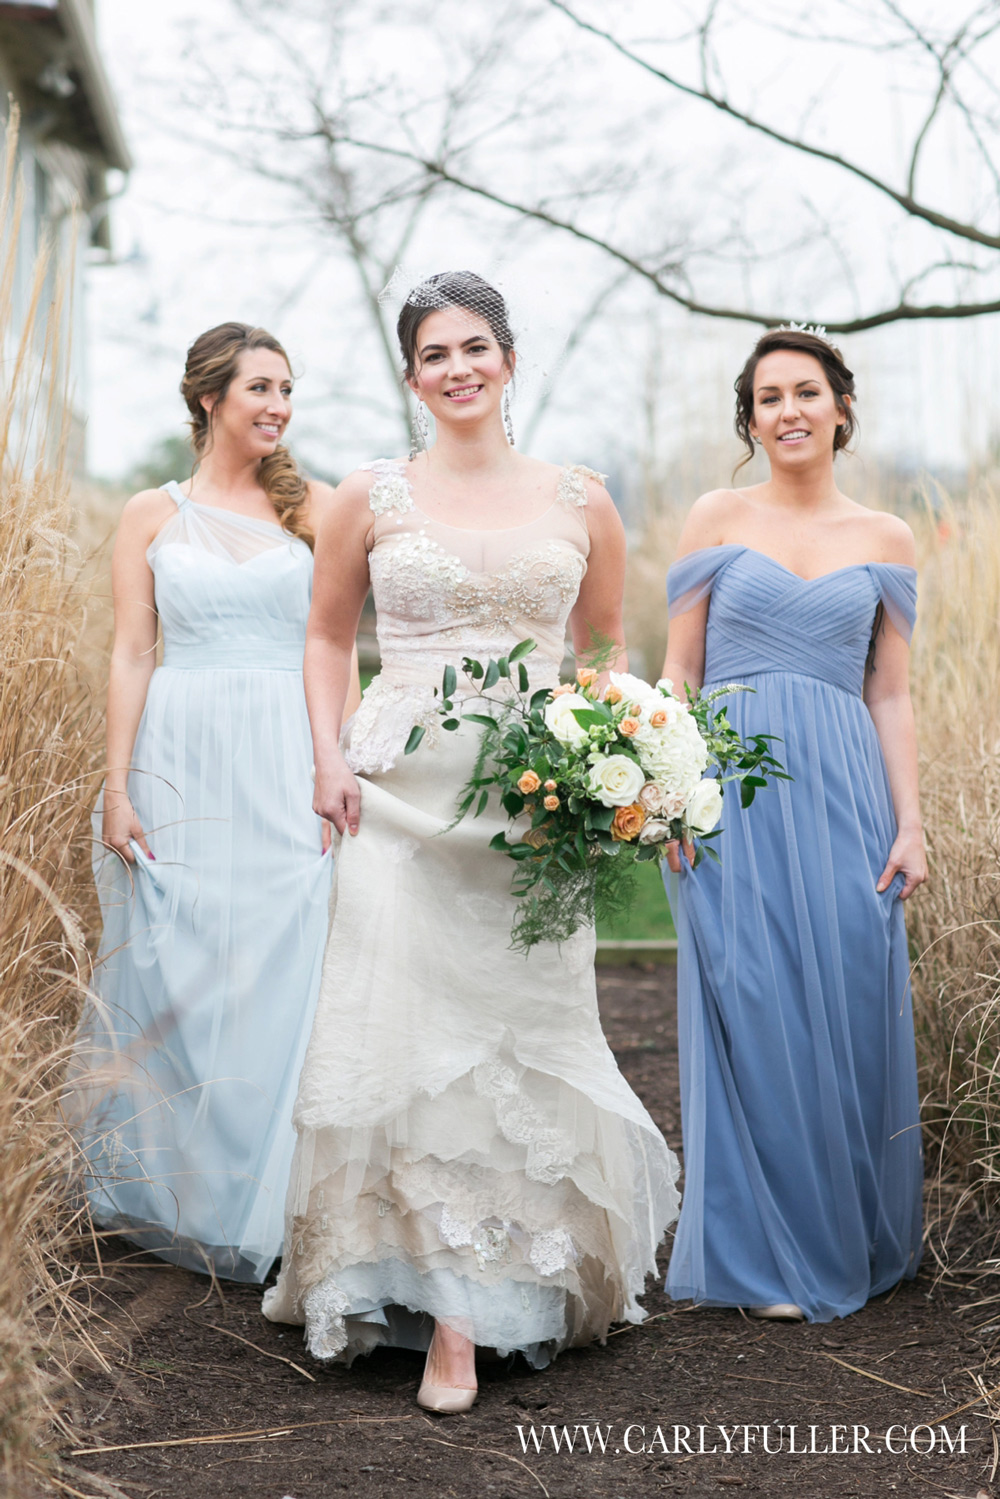 Our bride in couture Jill Andrews Gowns, with her lovely maids in dresses by Bella Bridesmaids. All headpieces by Jill Andrews Gowns.